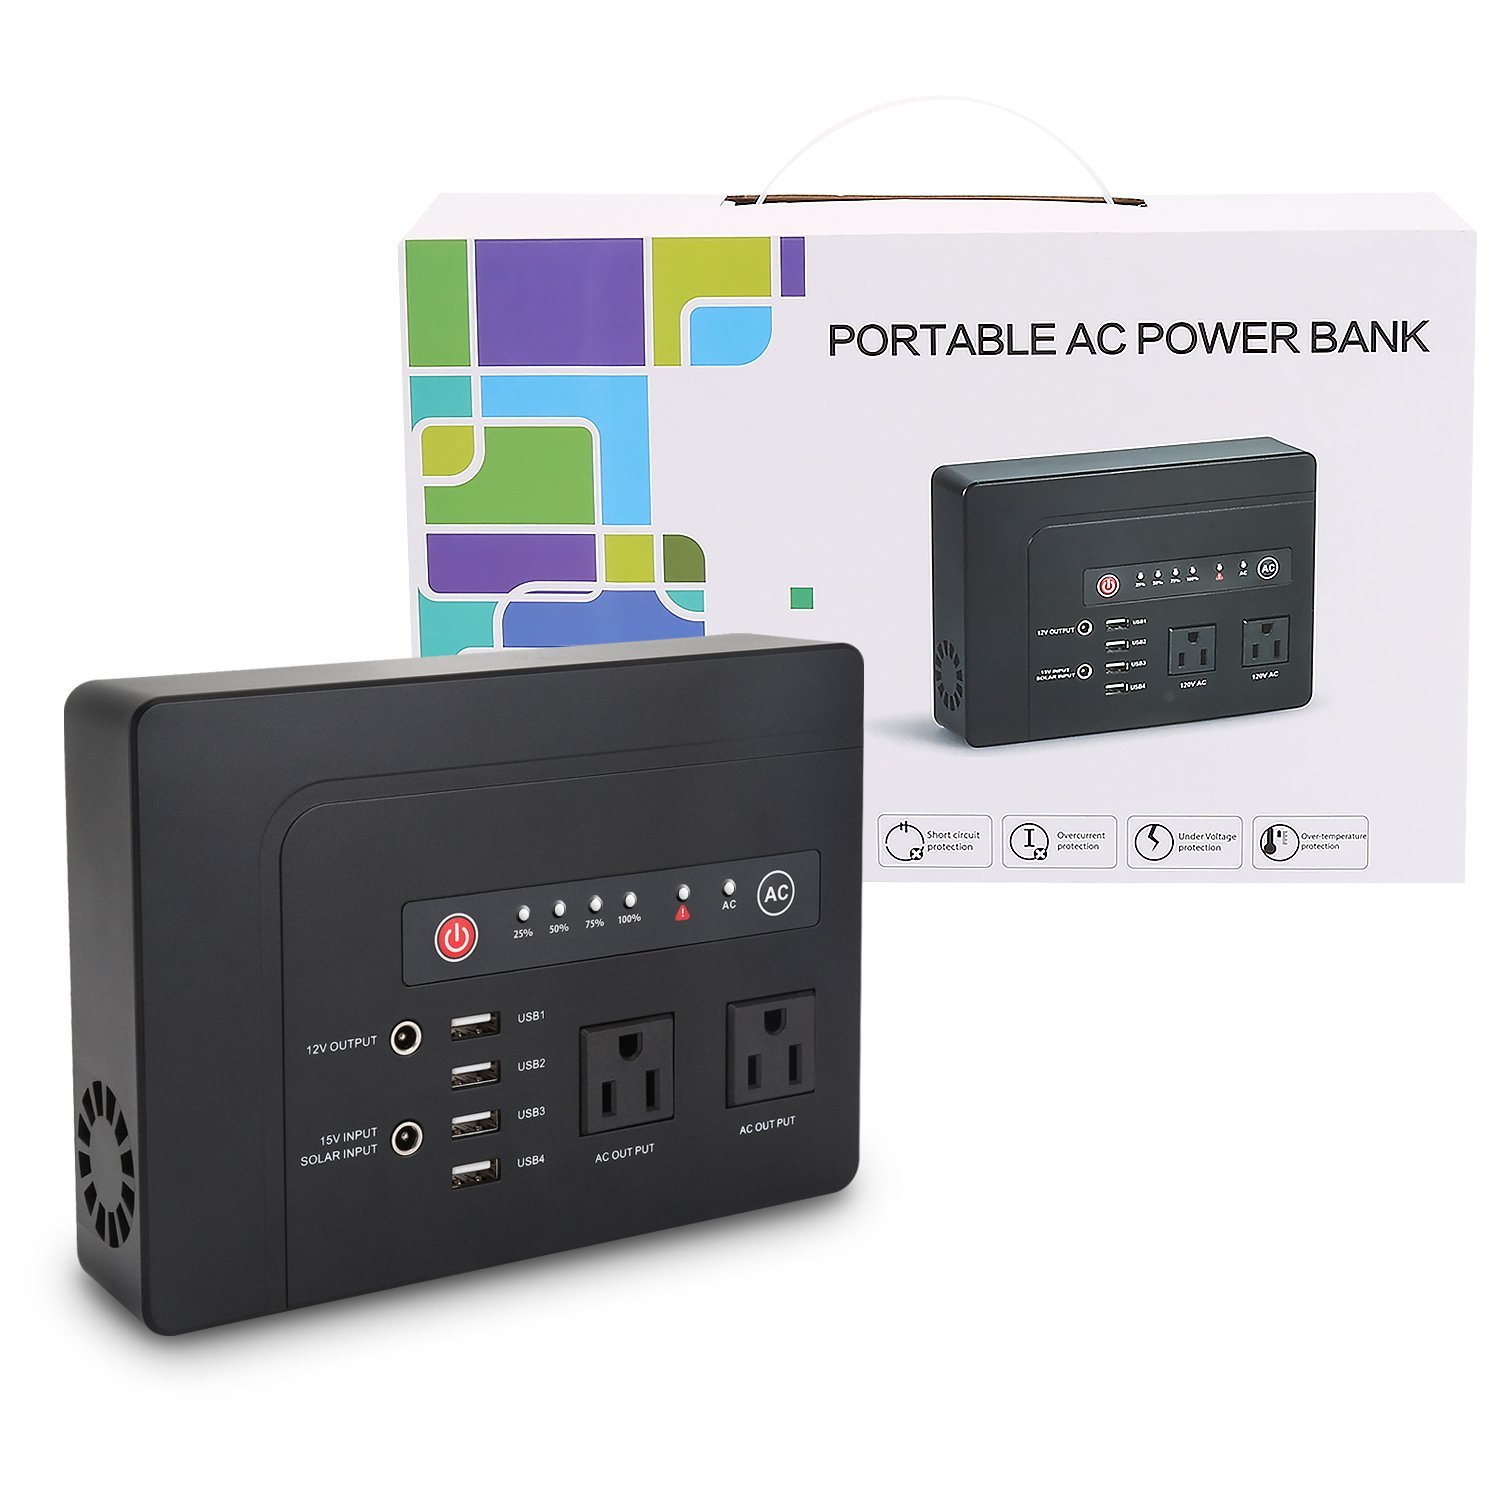 Hot sale solar panel system 1500w with battery 1kw solar energy storage system for home office